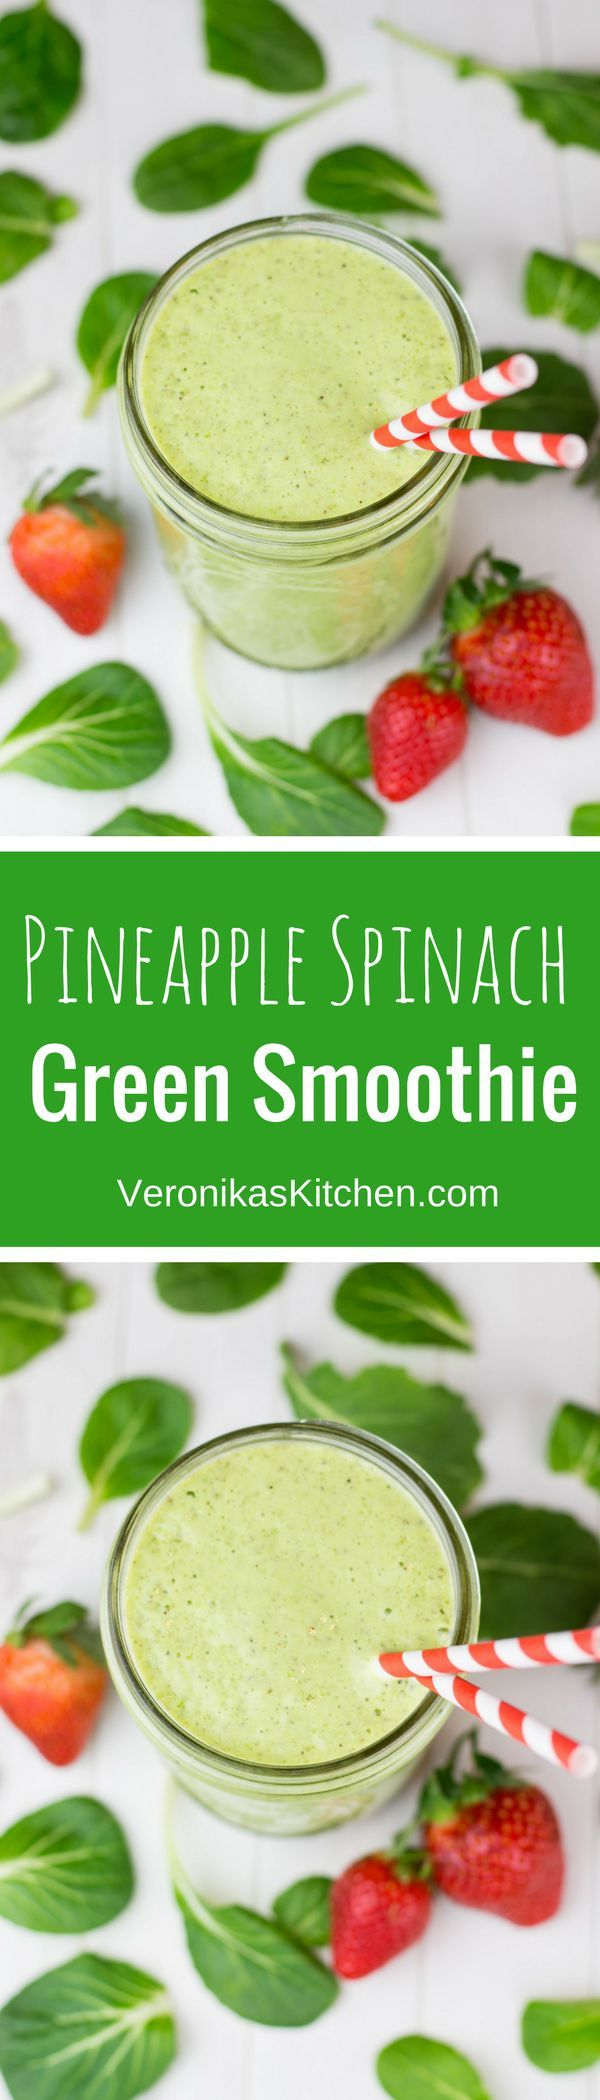 Pineapple Spinach Green Smoothie recipe with Chia seeds is a great healthy idea for breakfast, lunch, or a workout. ( smoothie recipes, smoothie bowl, smoothie recipes healthy, smoothies healthy, smoothie with spinach, smoothie with pineapple ) #CleanEatingRecipes #SmoothieRecipes #HealthyBreakfast #VegetarianRecipes #HealthySnacks